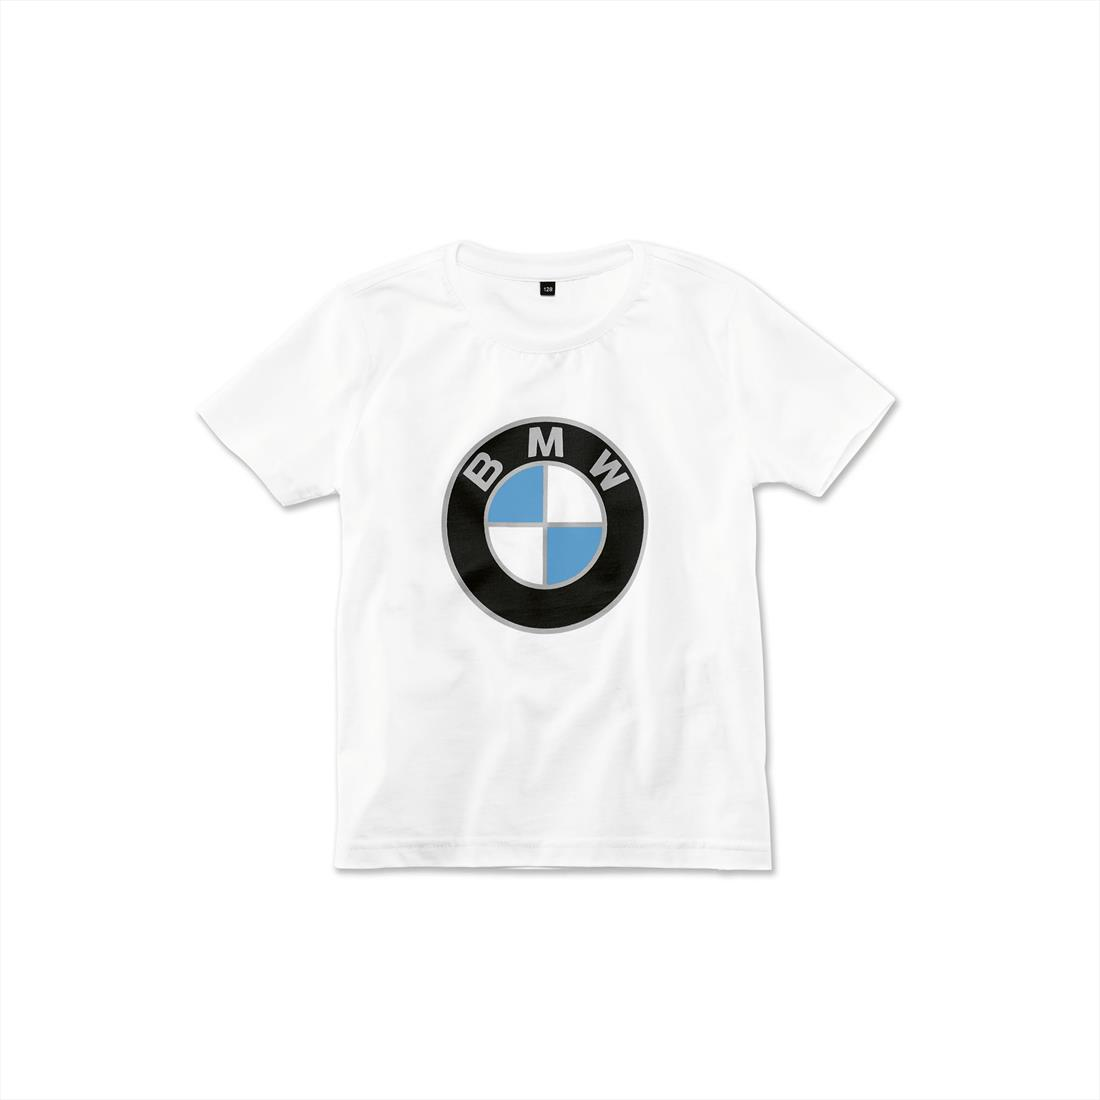 BMW LOGO T-SHIRT, KIDS